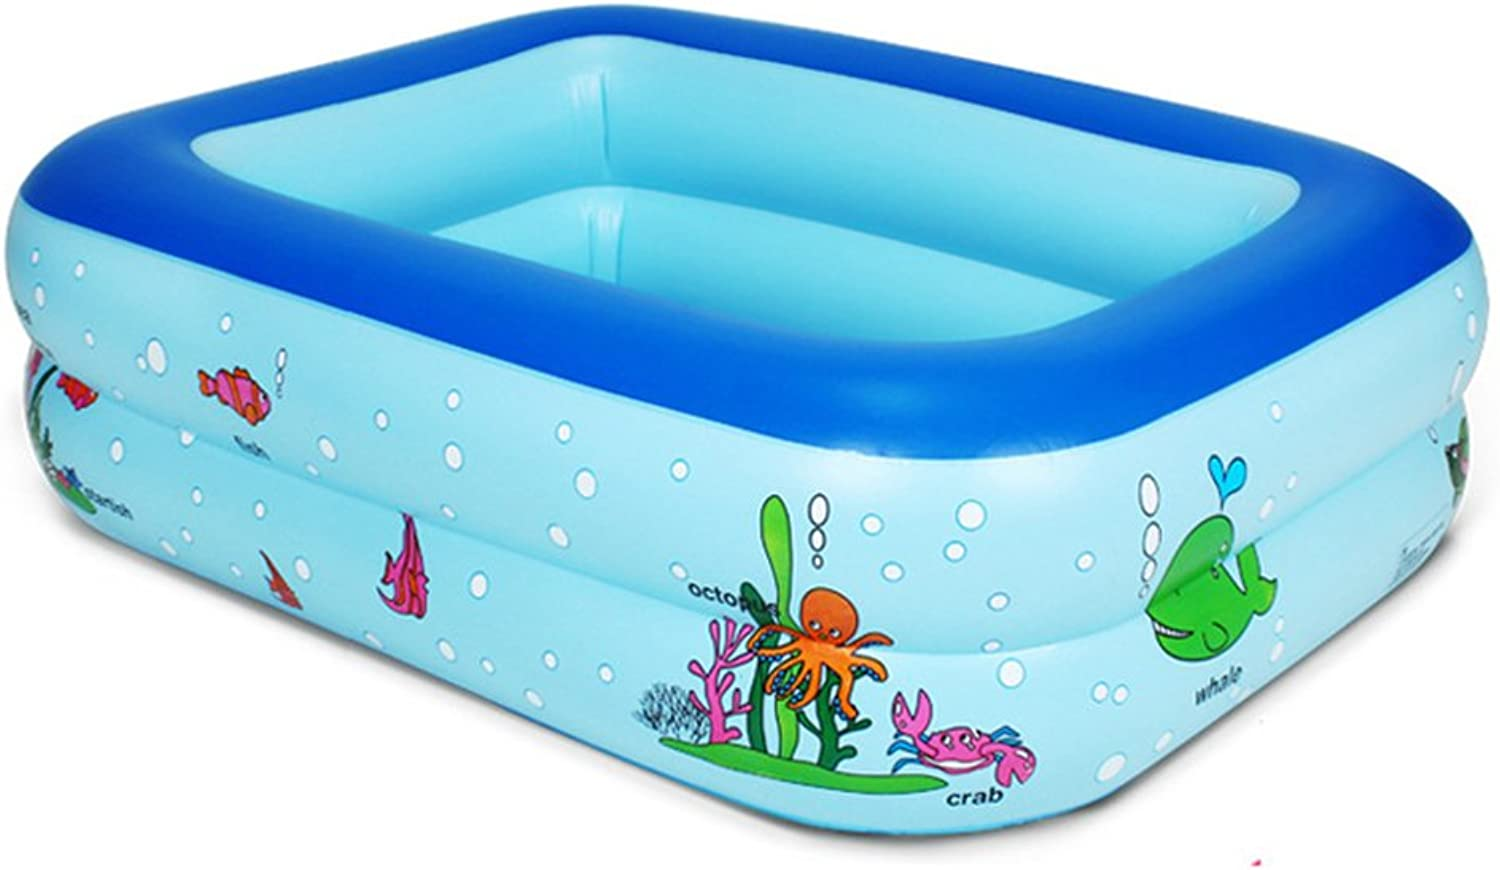 DMGF Inflatable Swimming Pool For Kids Giant Portable Foldable Bathtub Comfortable Home Spa Massage Bathroom SPA